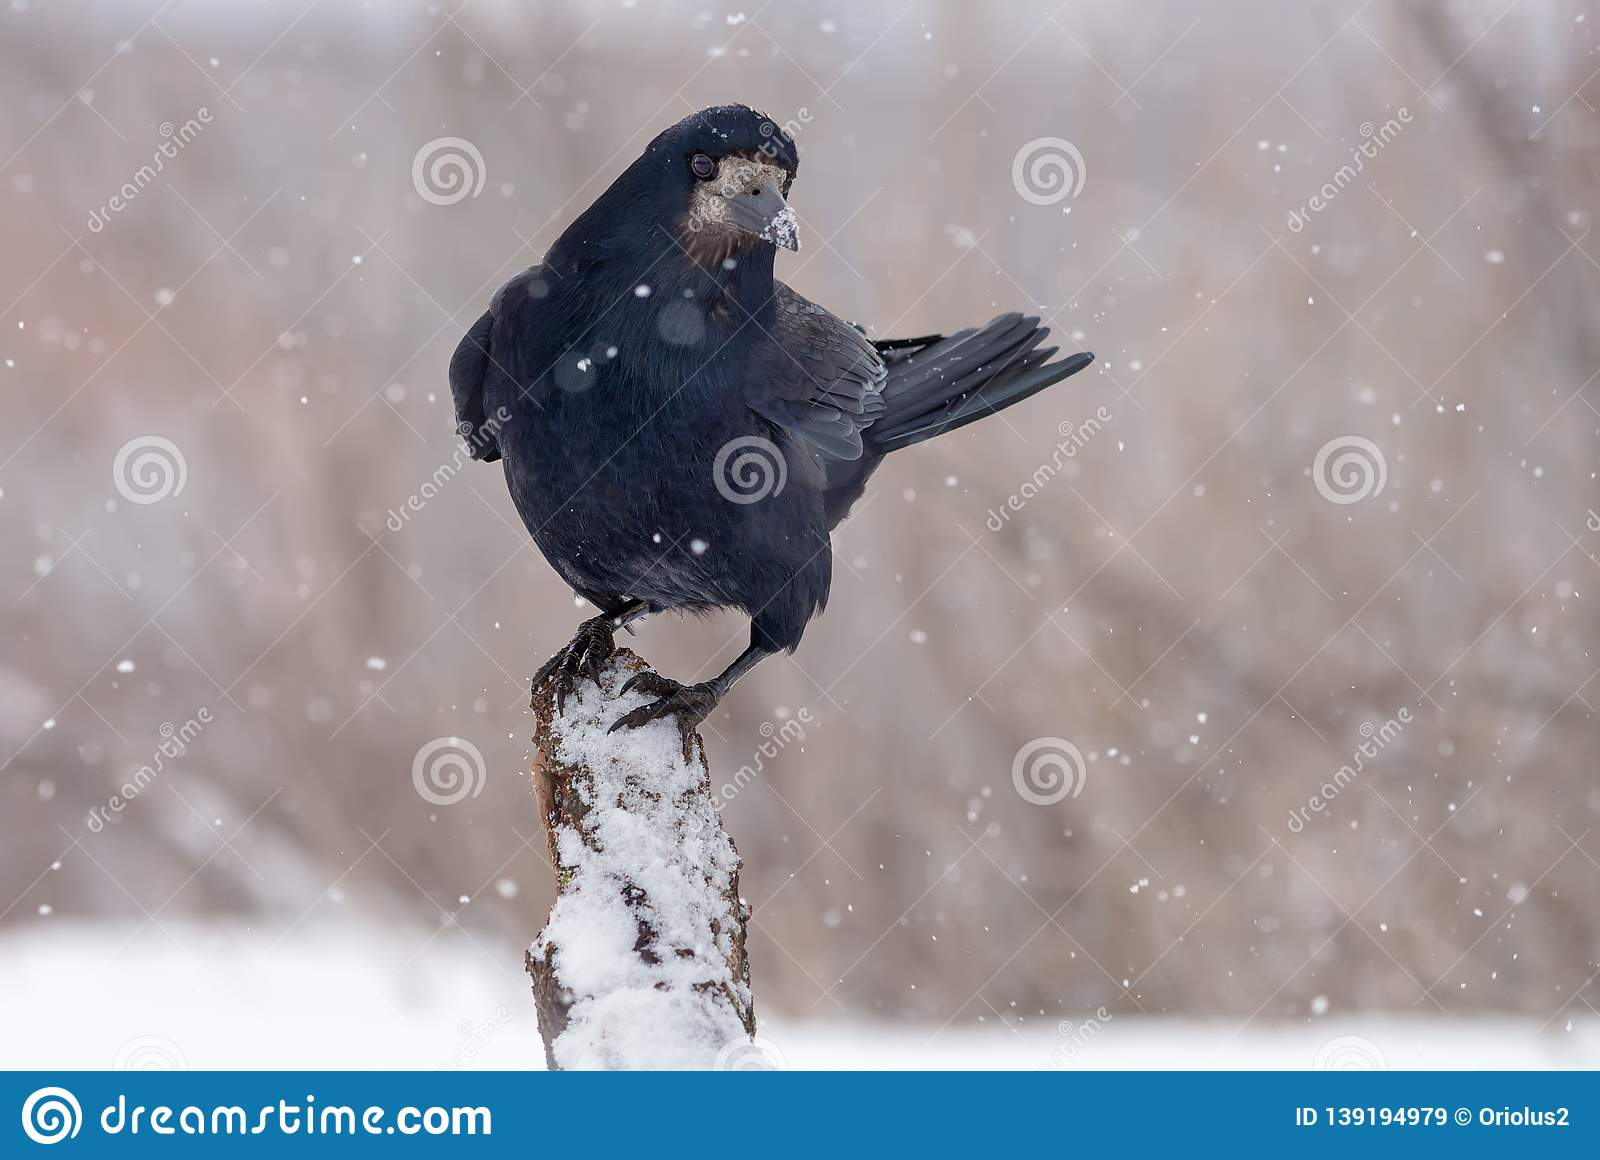 Rook stands on top of a snow covered snag or trunk in snow storm